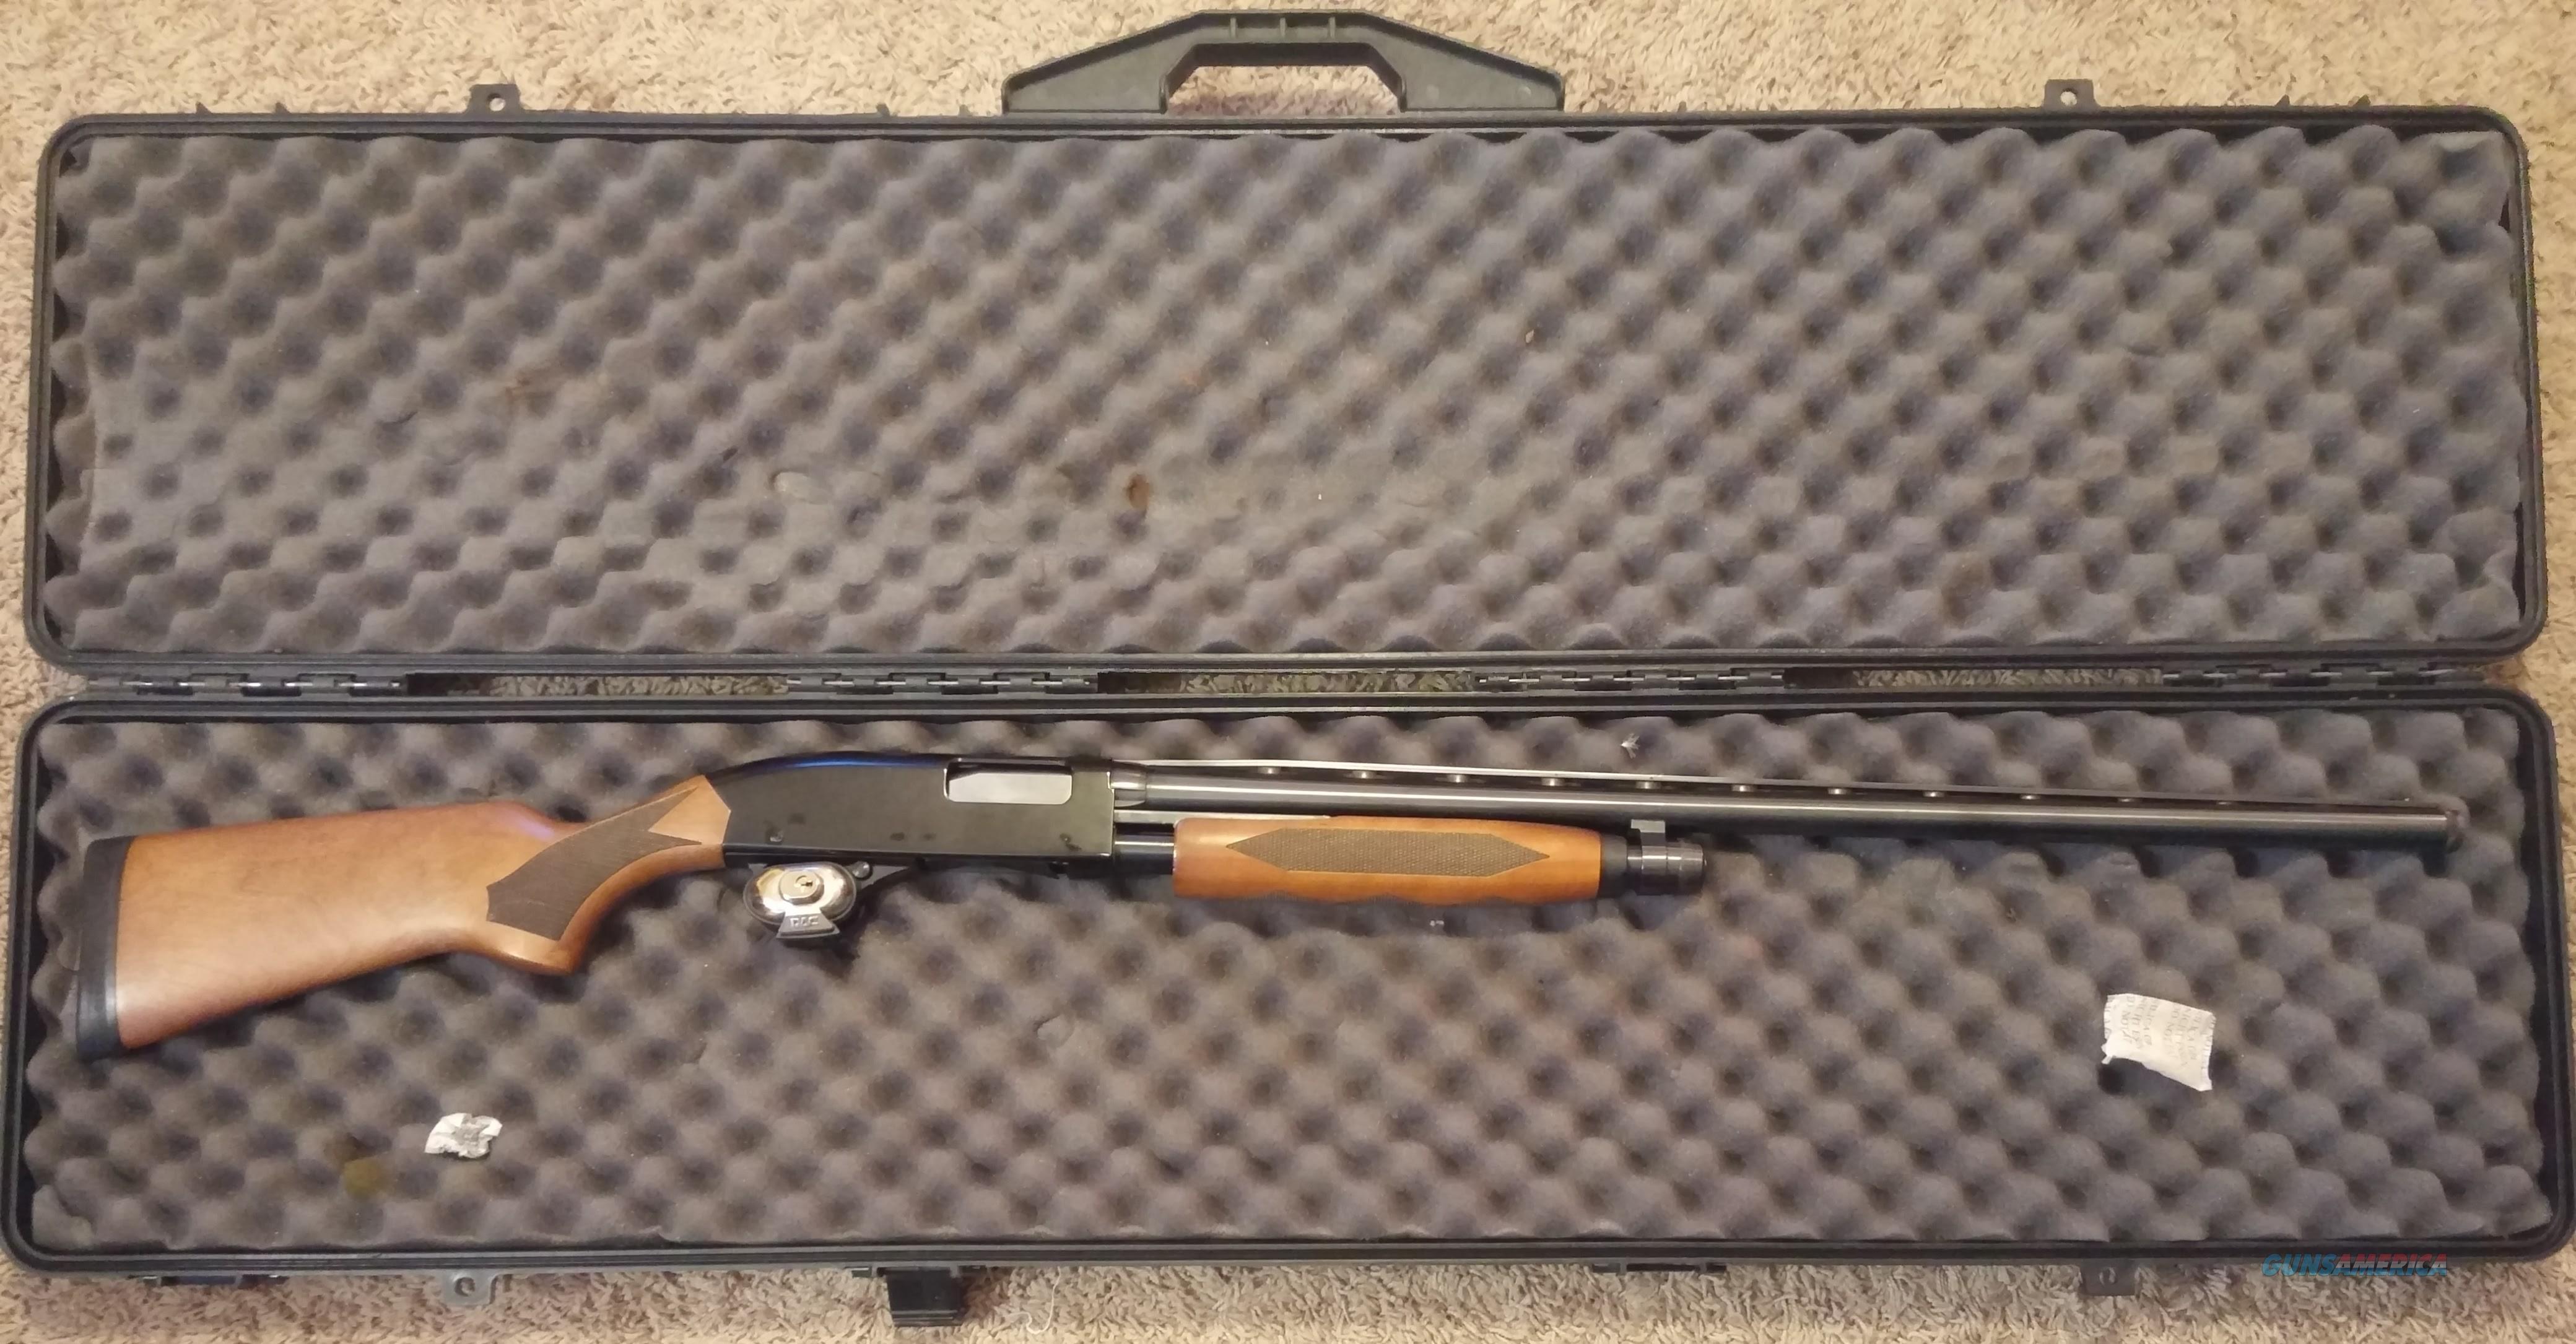 Winchester Model 1300 12 Gauge   Guns > Shotguns > Winchester Shotguns - Modern > Pump Action > Hunting